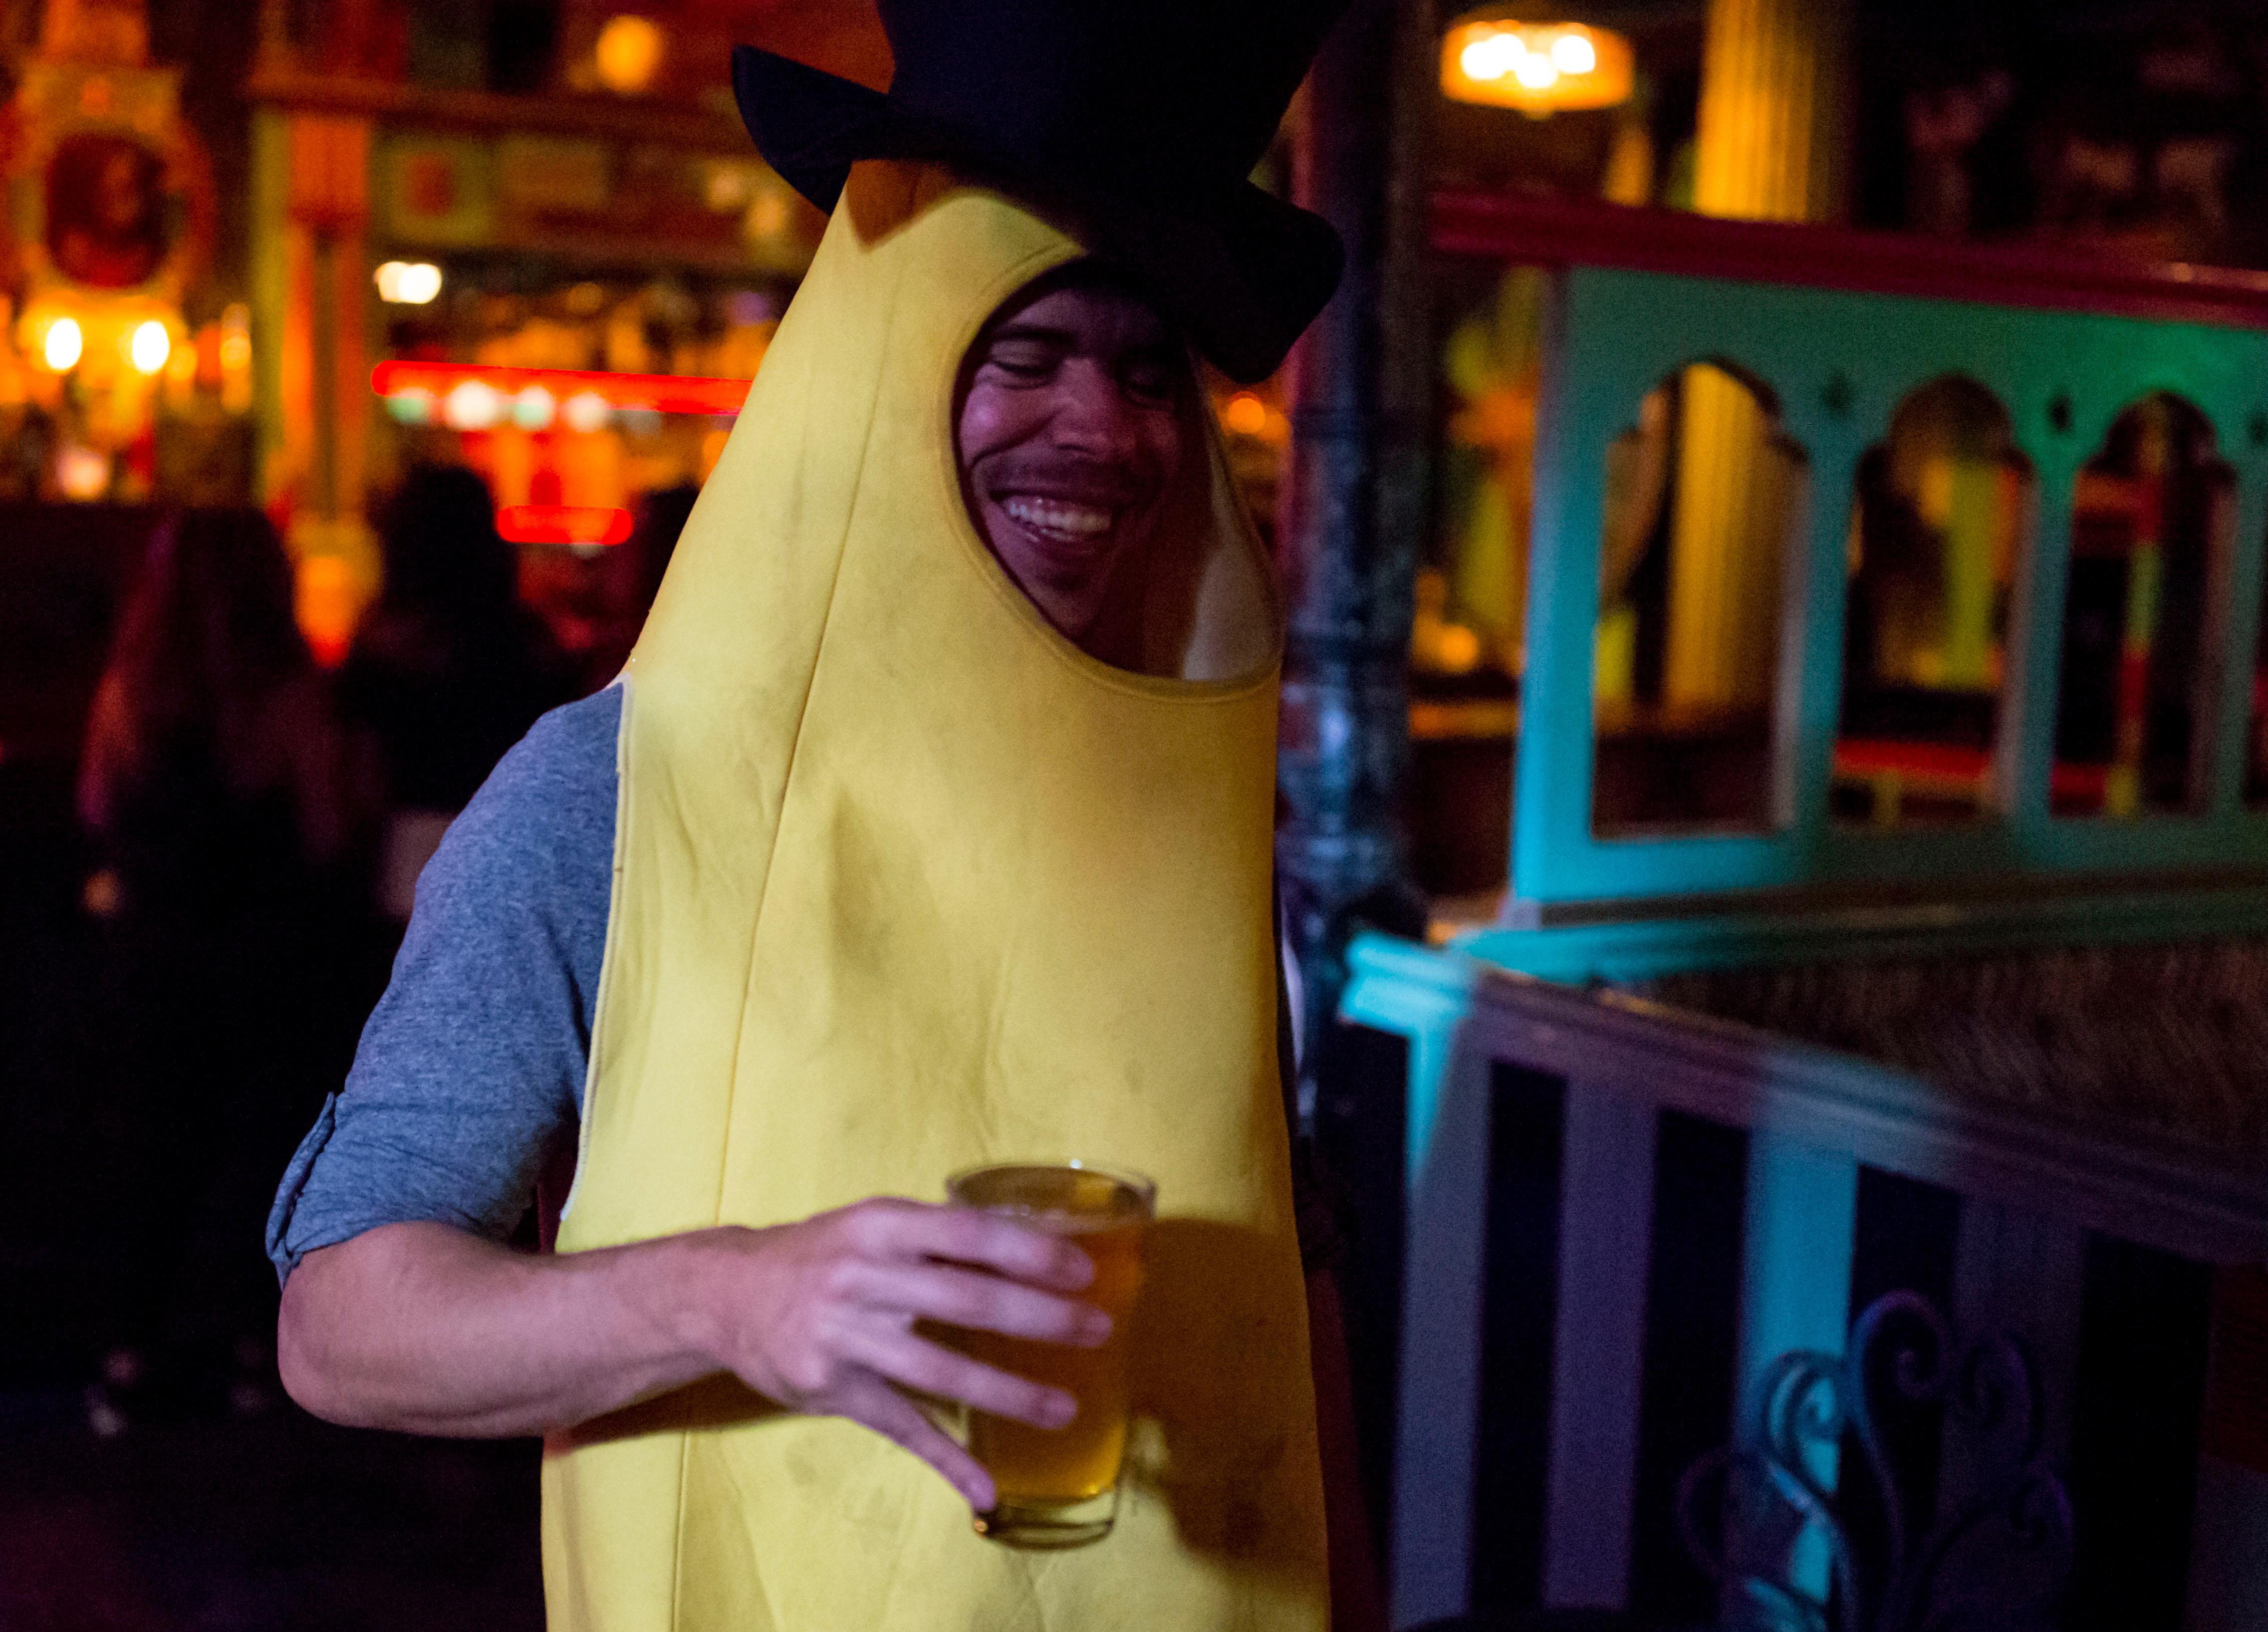 The inaugural Seattle Banana Bunch meetup took place last night at the Unicorn in the Capitol Hill neighborhood of Seattle. The group was originally founded by Portland resident Shawn MacArthur in September 2015 after he and his friends thought it would be a fun time to hit the bars in costume. Their last banana meetup had over 60 attendees, so MacArthur has branched out to Seattle with his friend Colin Beckley to build a banana community in the Emerald City. Why? The group believes in a culture of inclusivity, and sometimes it's hard to make friends with the ever-looming Seattle Freeze. I mean - who doesn't want to don a yellow costume and drink beer? (Sy Bean / Seattle Refined)